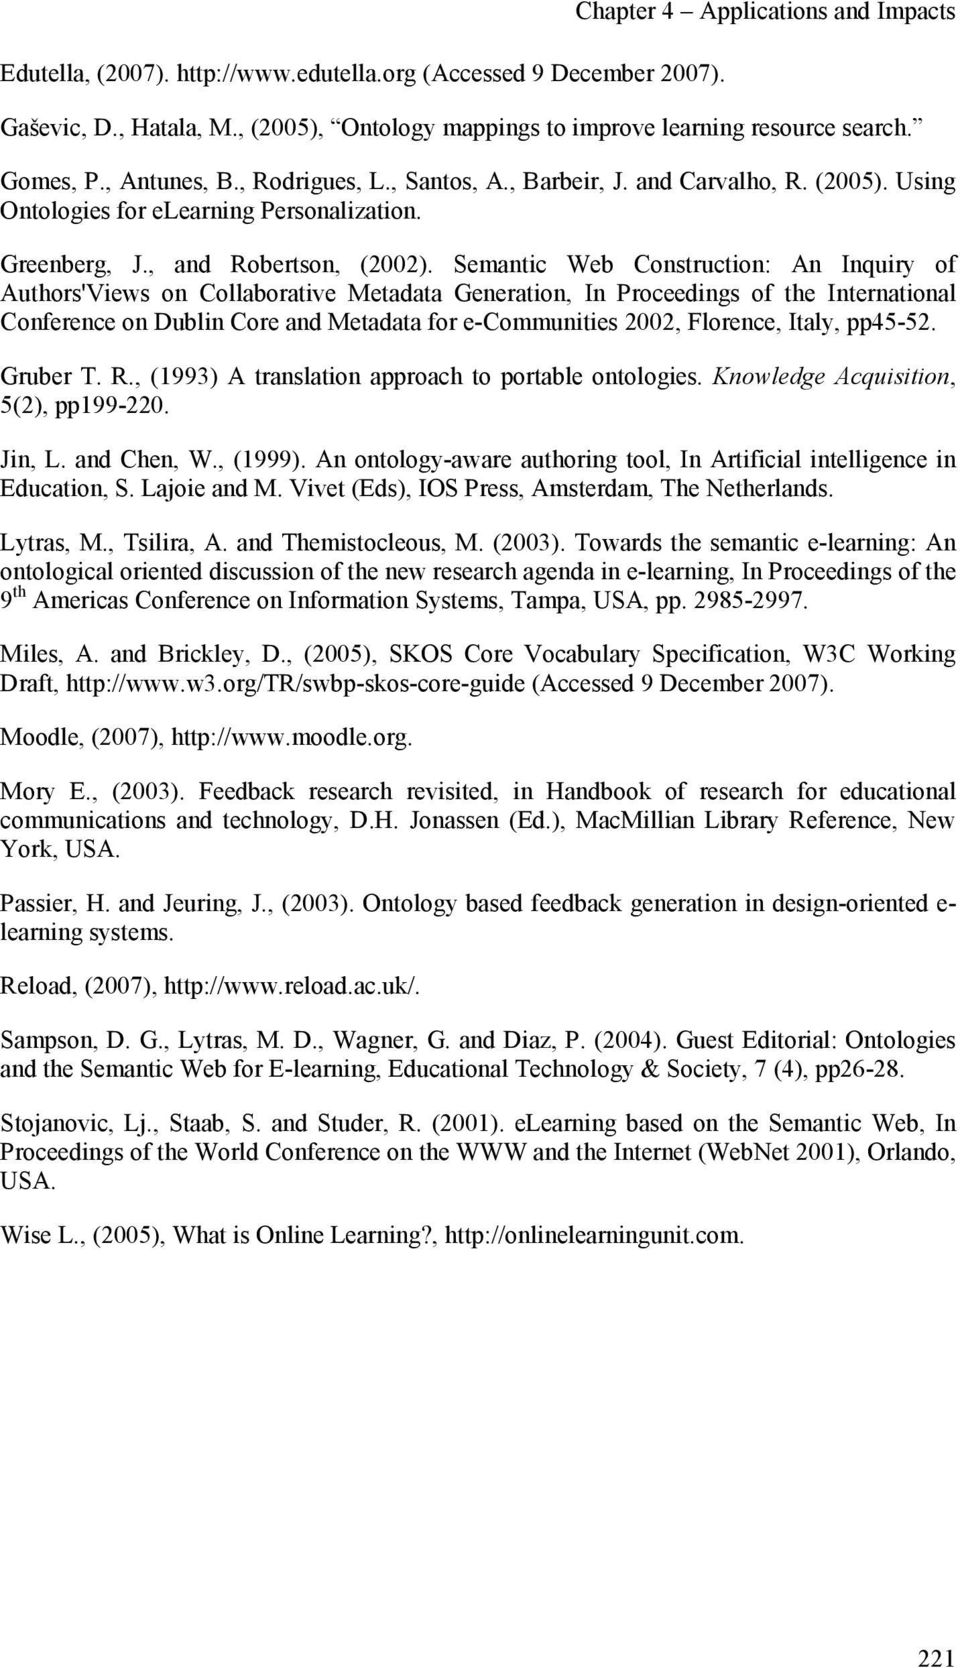 Semantic Web Construction: An Inquiry of Authors'Views on Collaborative Metadata Generation, In Proceedings of the International Conference on Dublin Core and Metadata for e-communities 2002,